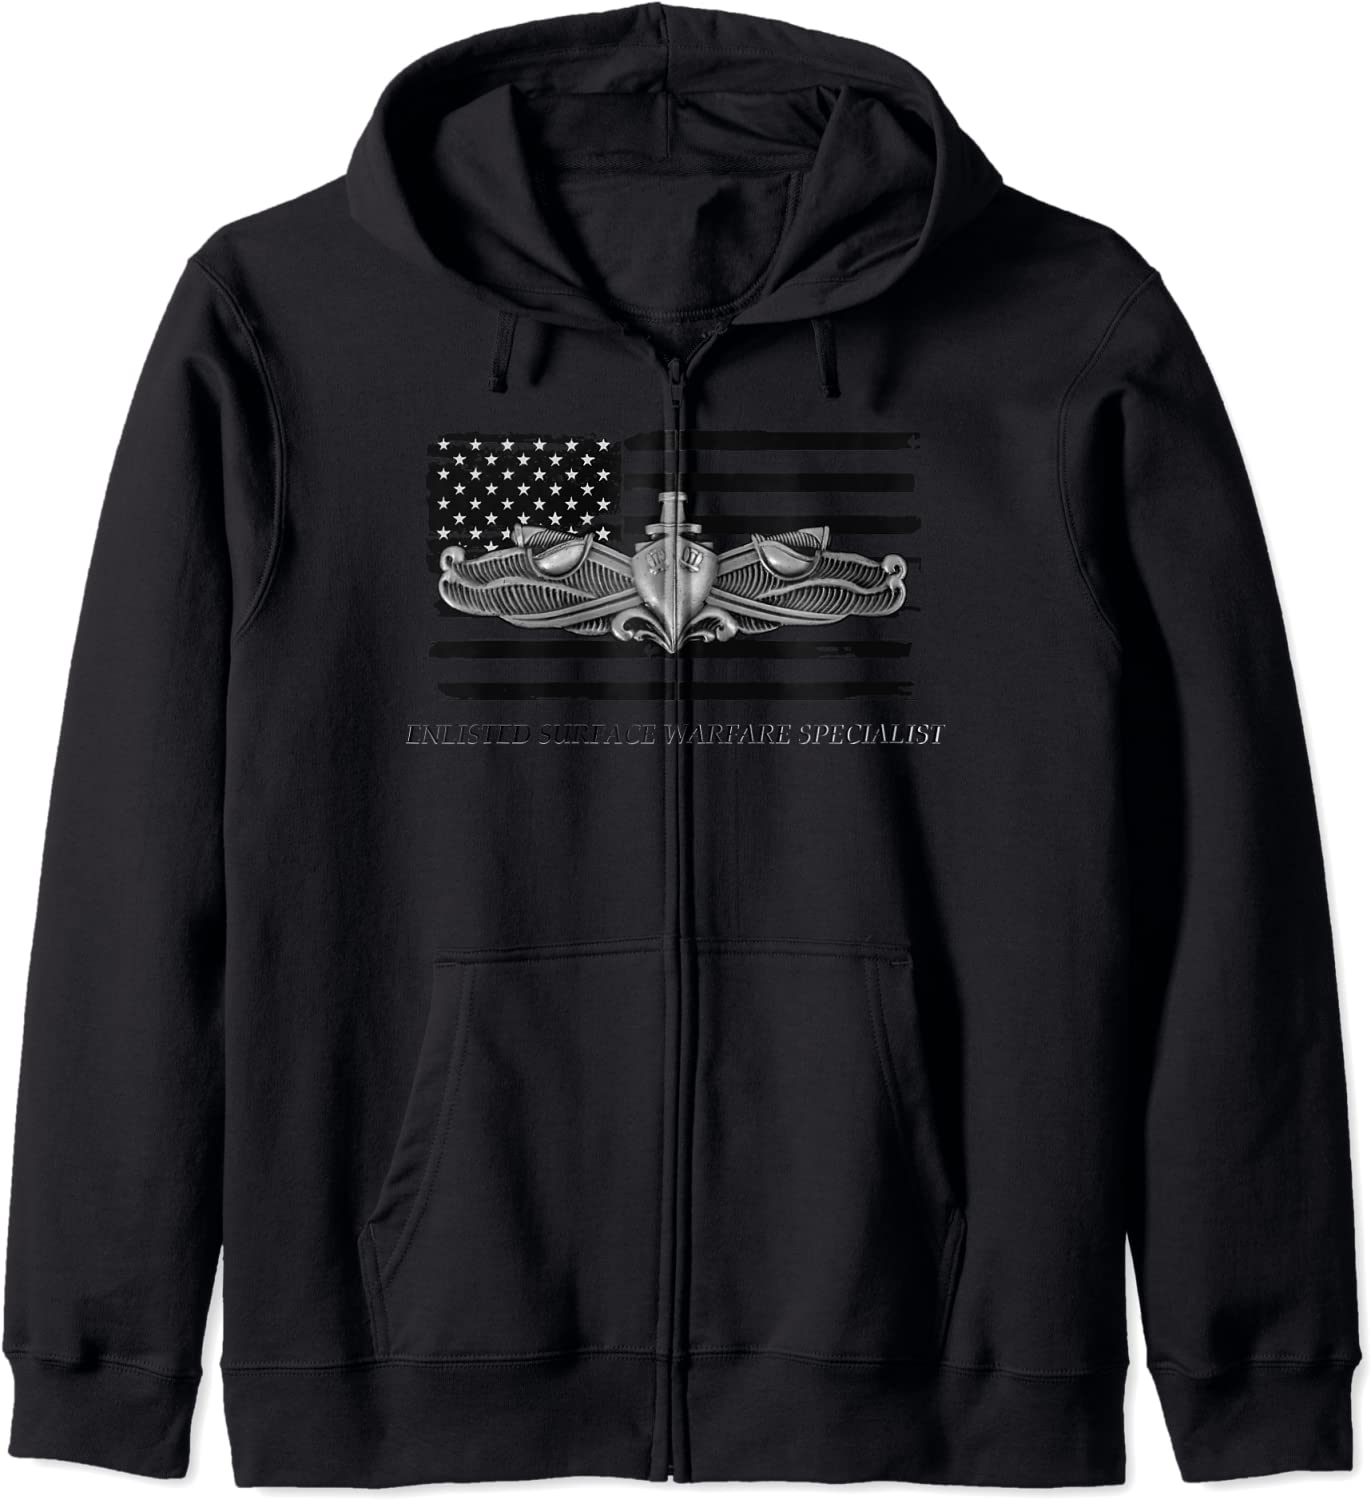 Navy Enlisted Max 80% OFF Surface Specialist ESWS Beauty products Hoodie Zip